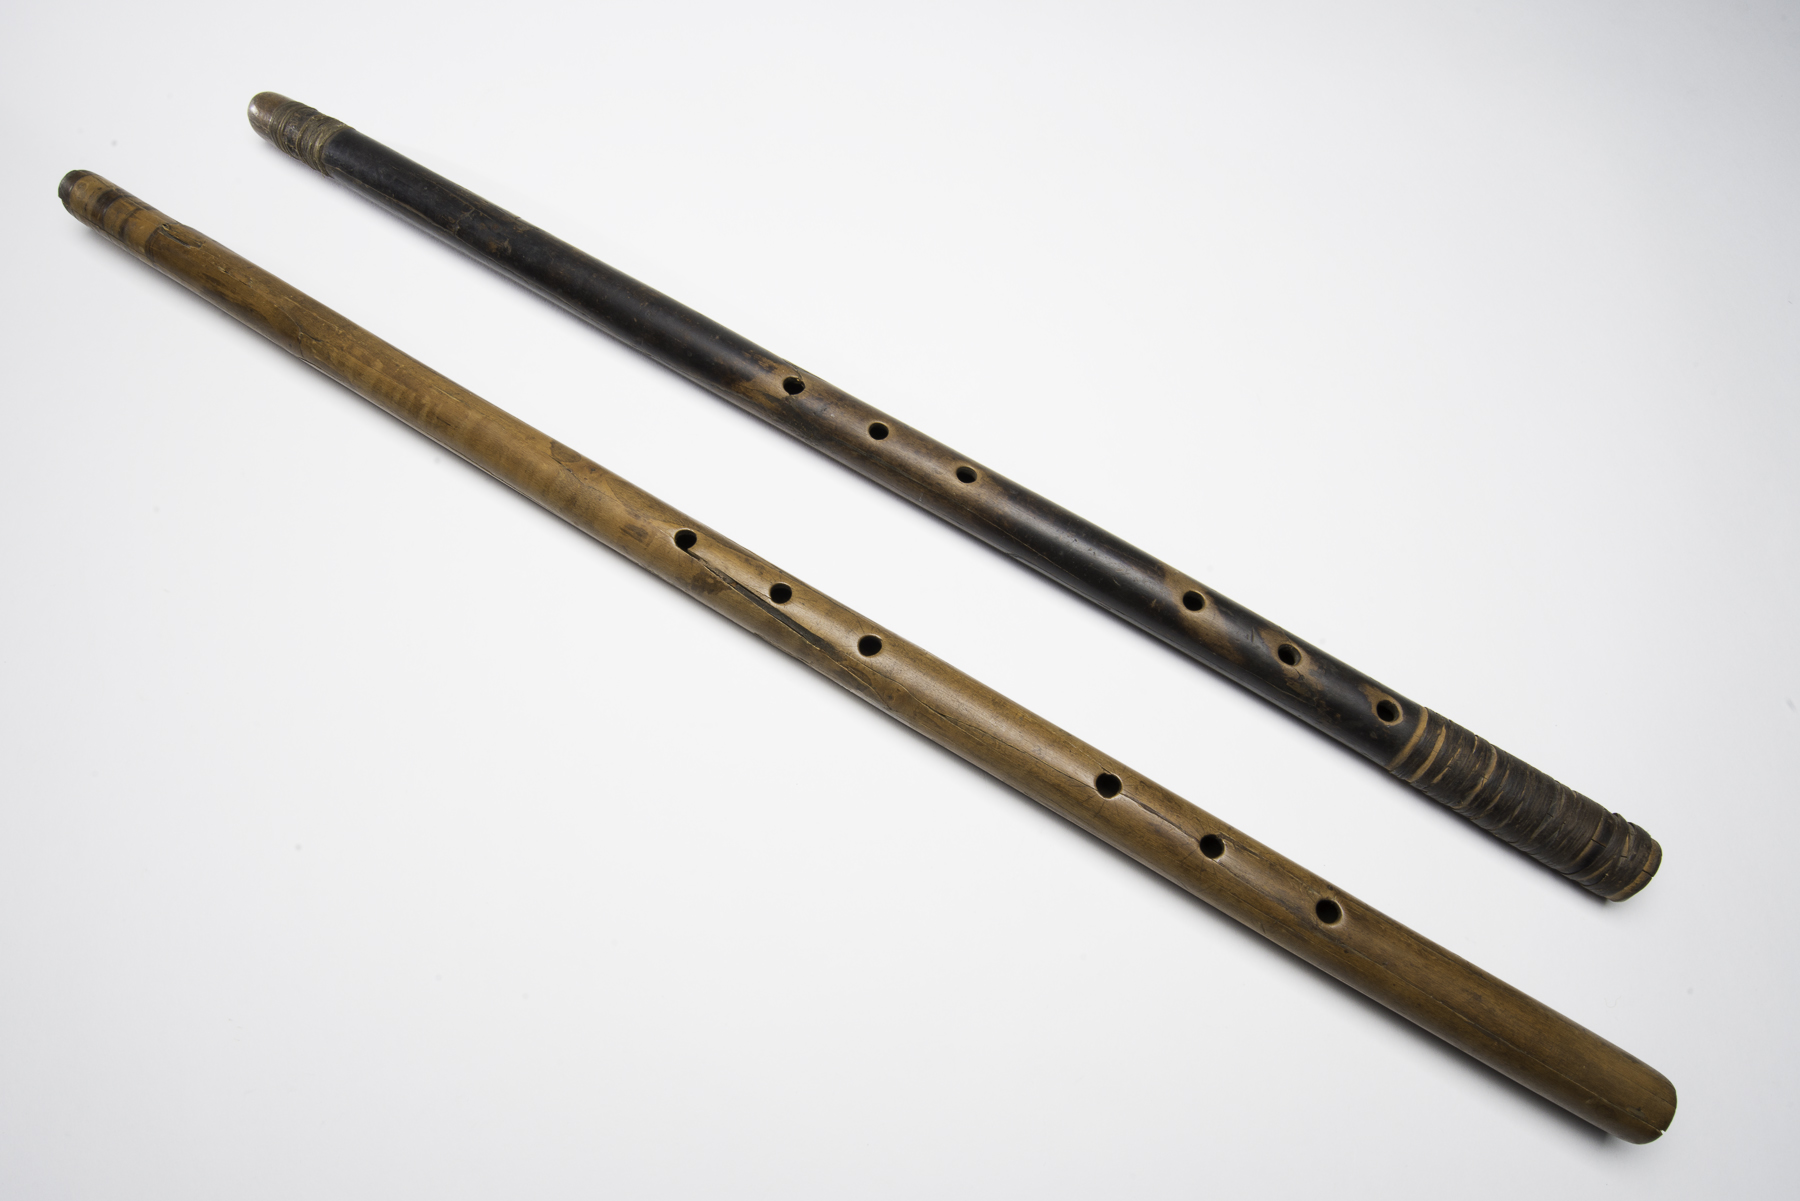 A-14550 and 51, 620–670 CE (Common Era=AD). Length: 68.5 cm, diameter: 2.8 cm.